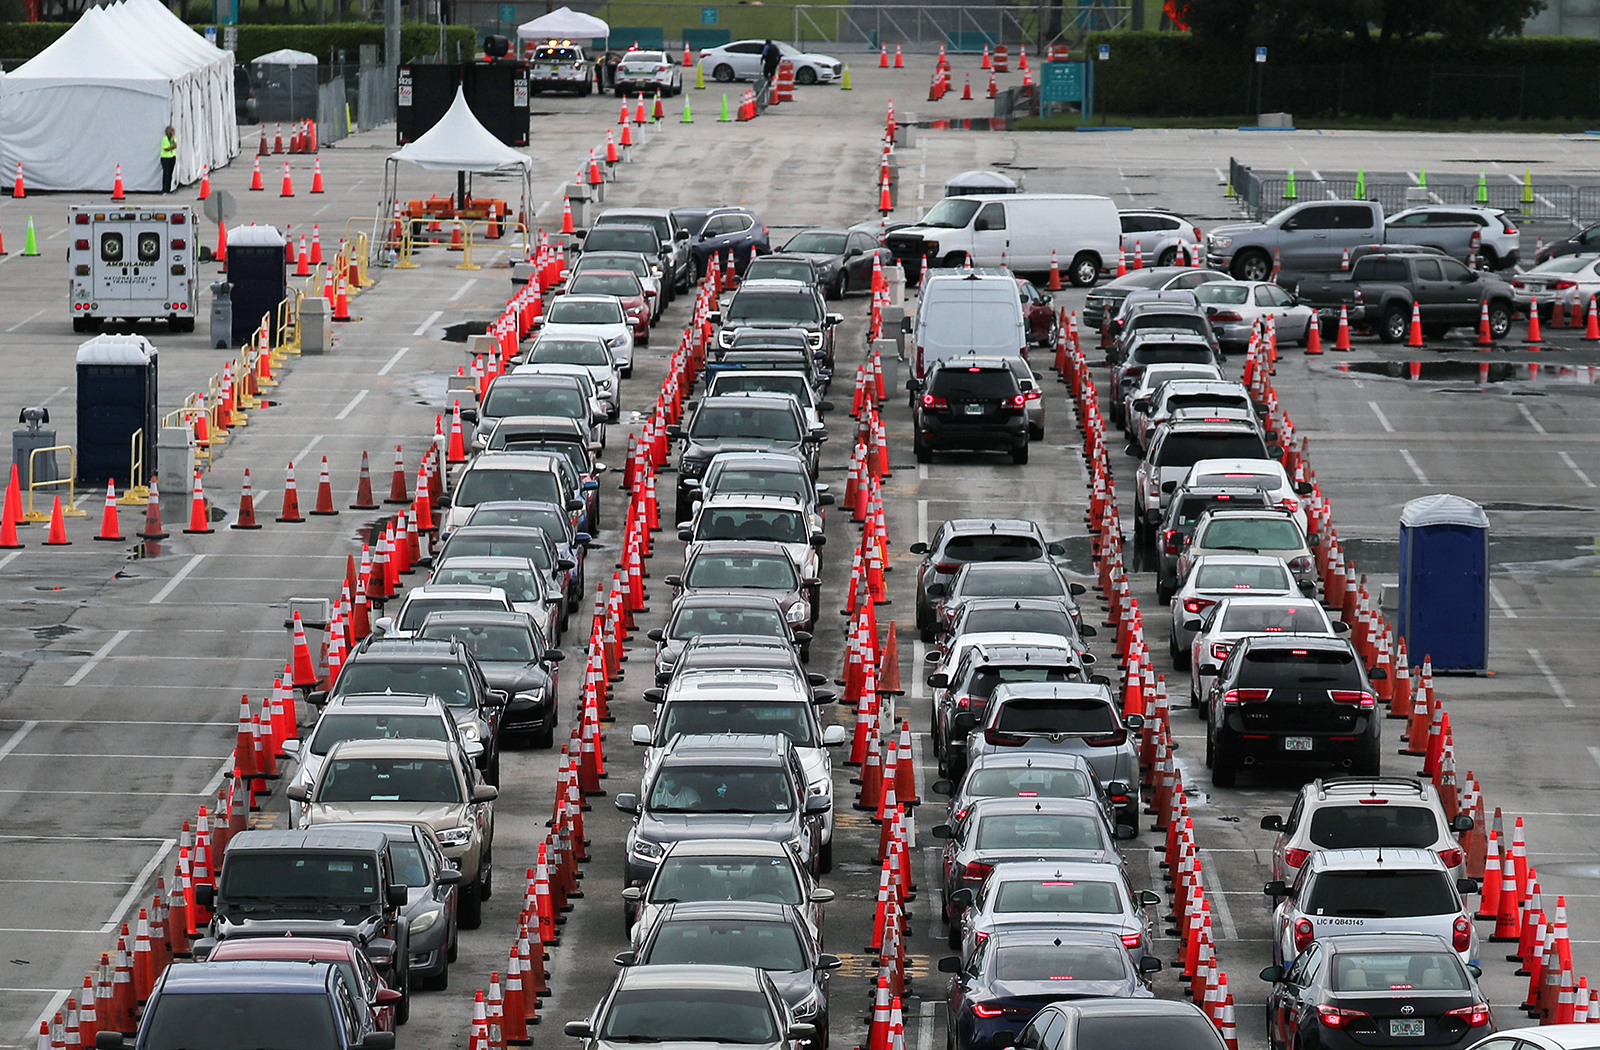 Cars are seen as the drivers wait to be tested for Covid-19 at the test site located in the Hard Rock Stadium parking lot on July 6, in Miami Gardens, Florida.